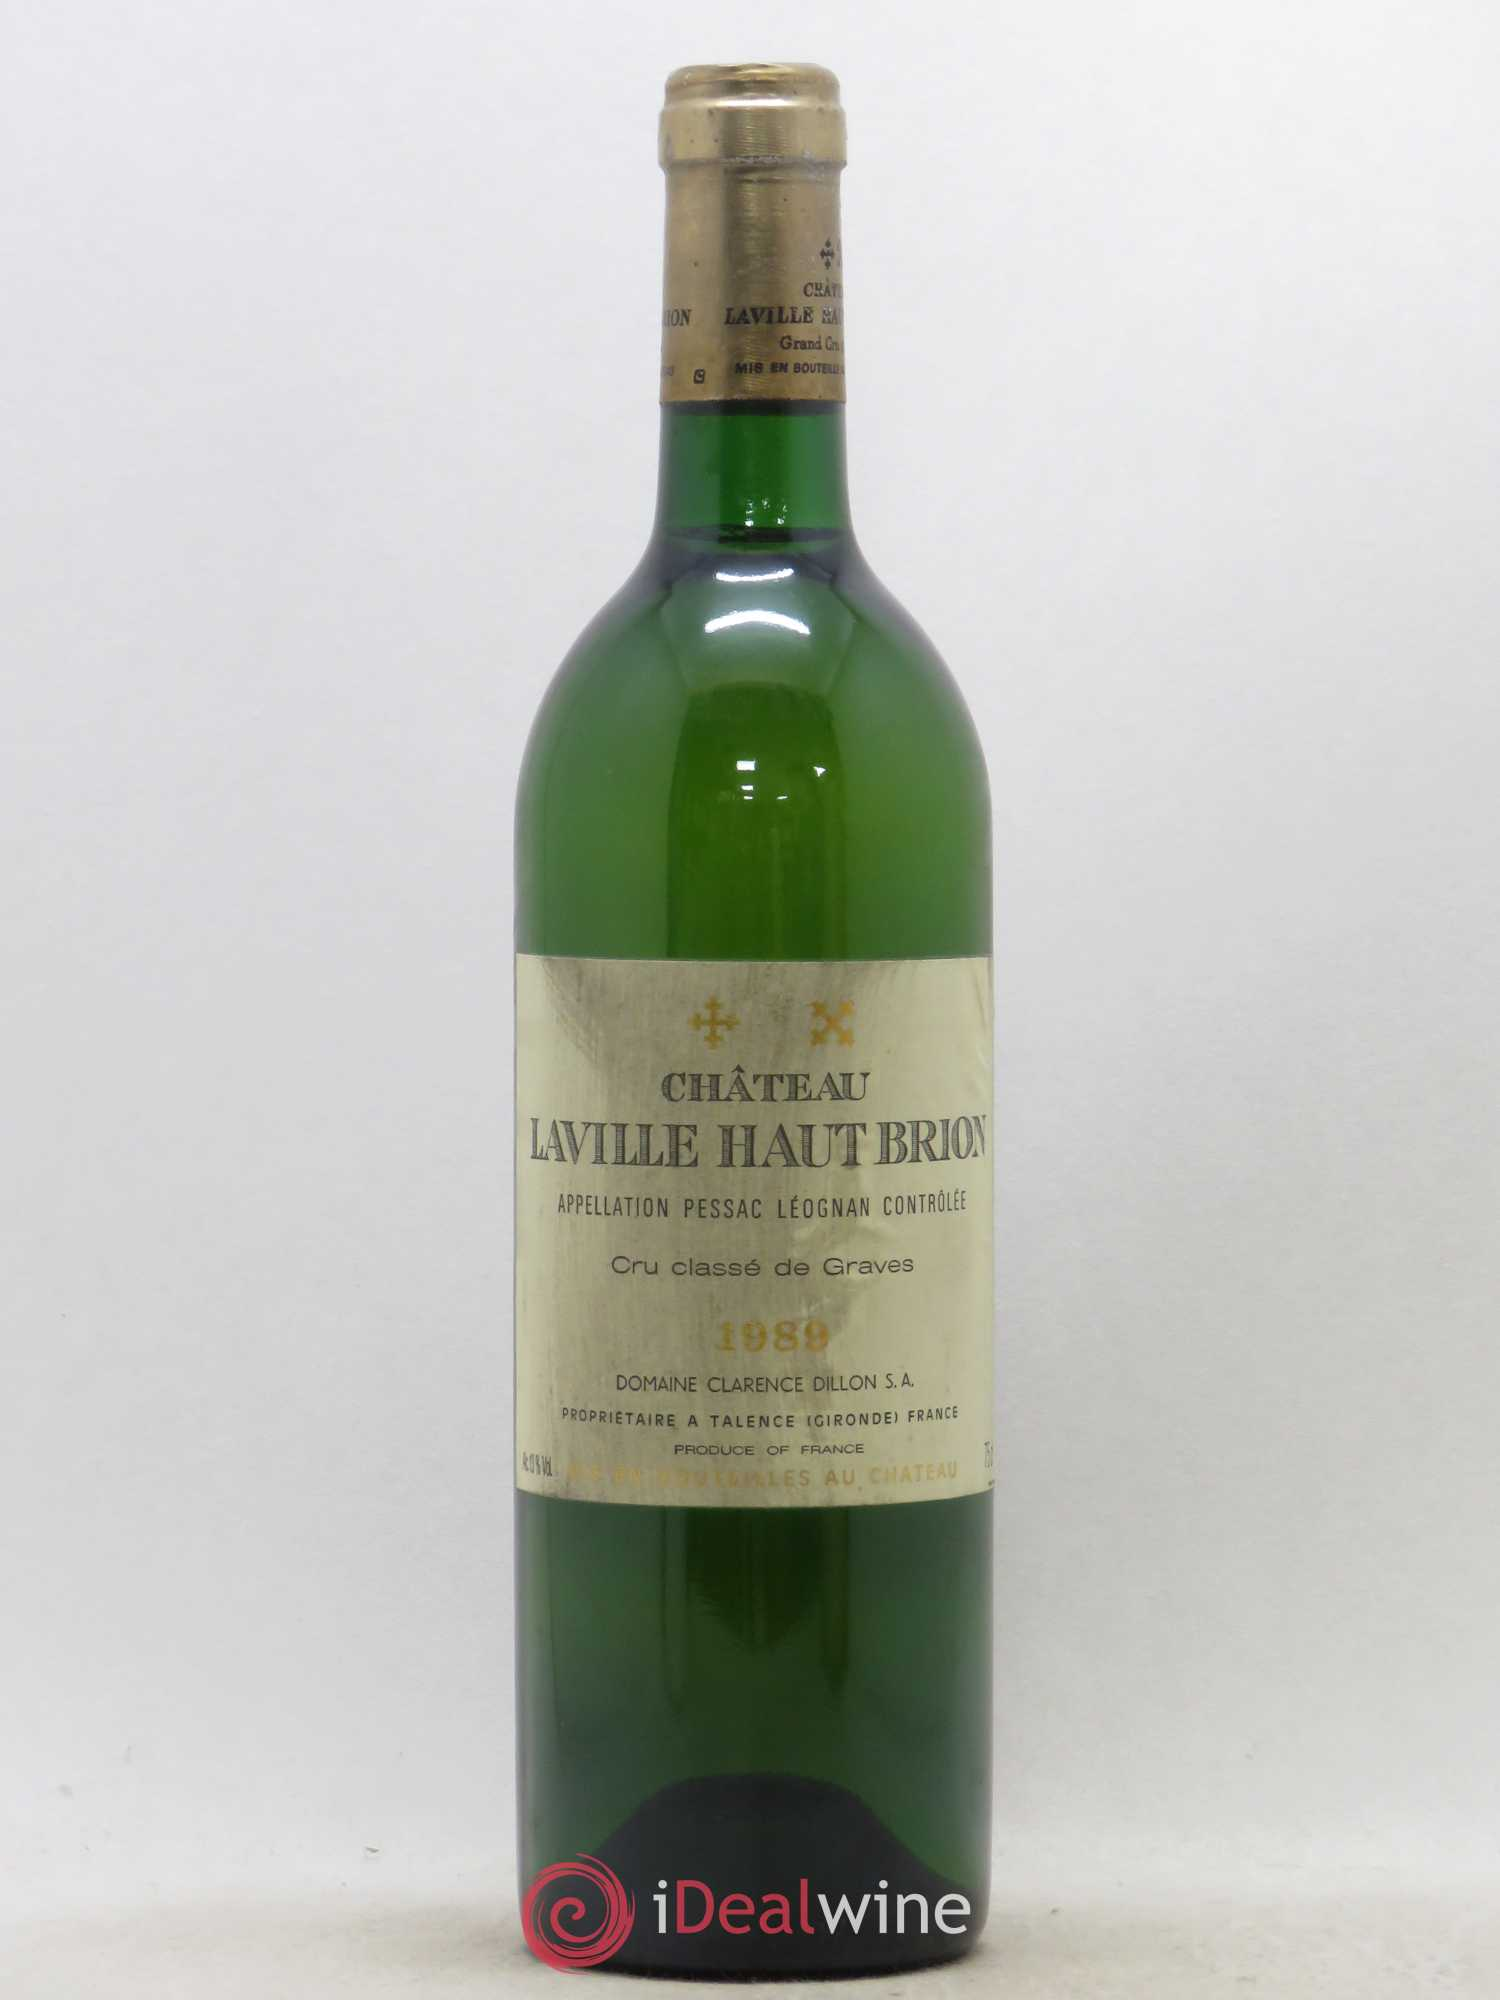 Château Laville Haut-Brion Cru Classé de Graves  1989 - Lot of 1 Bottle